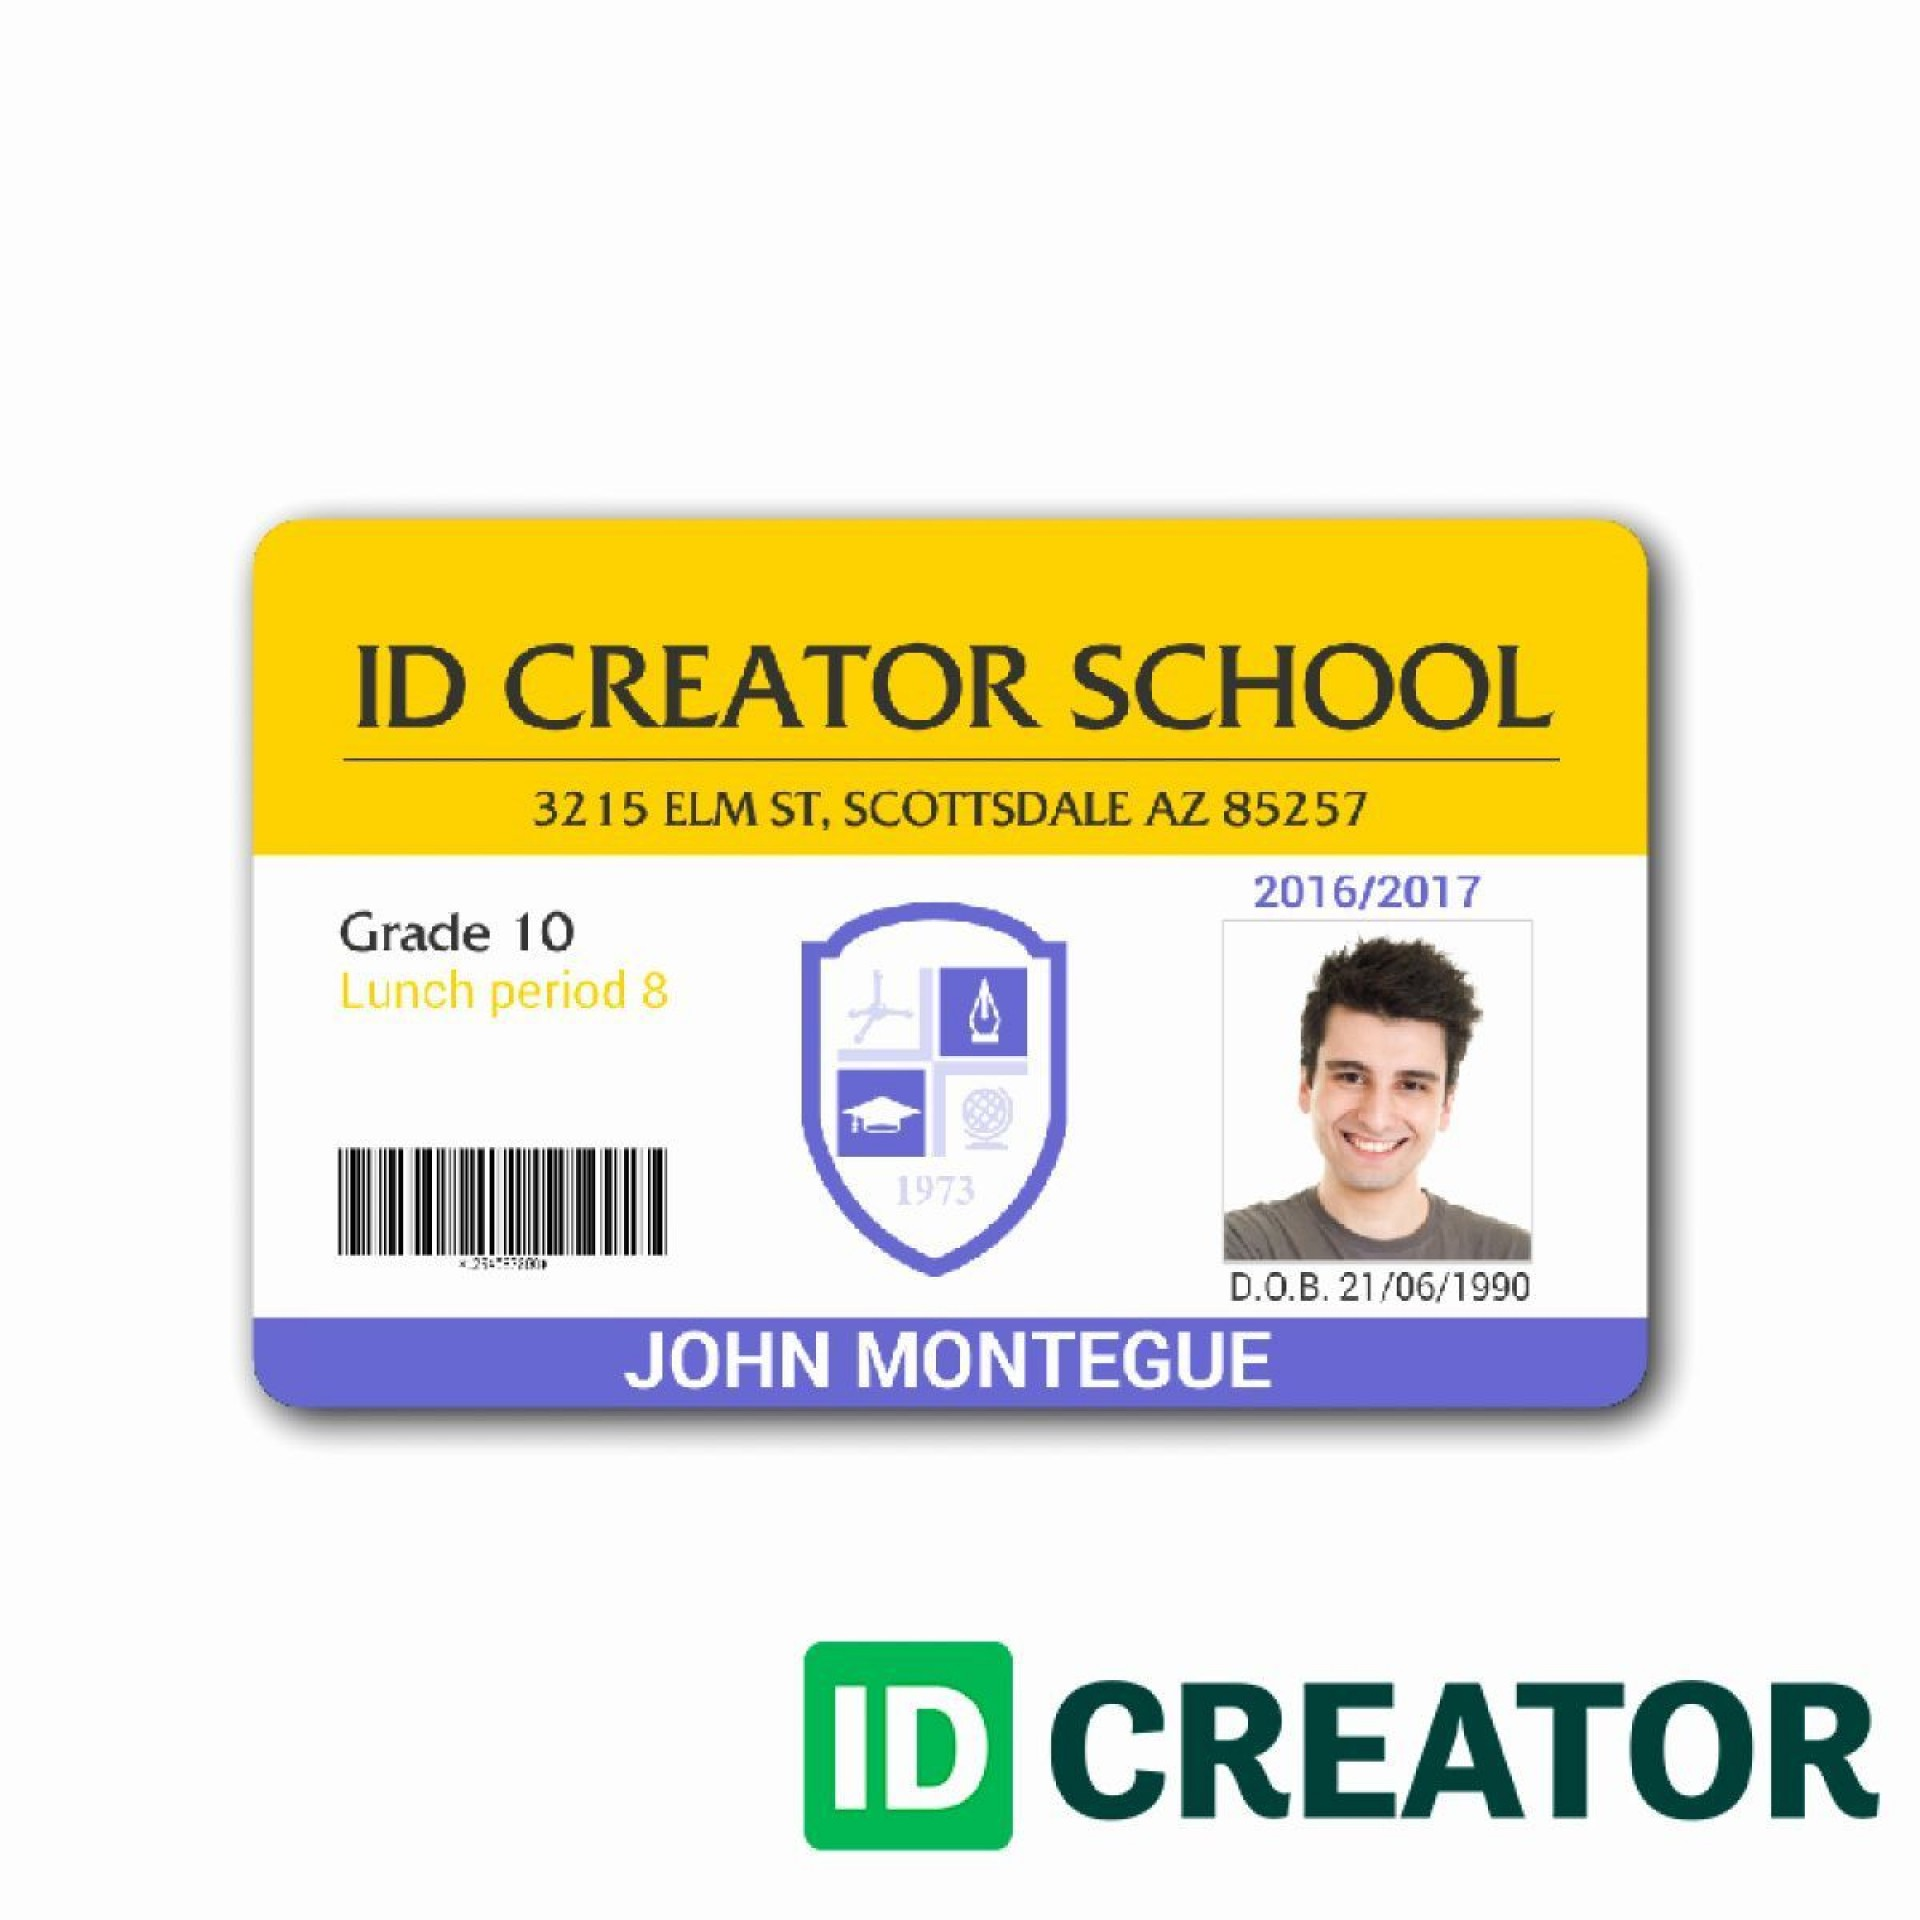 009 Sensational Student Id Card Template Concept  Free Psd Download Word School1920